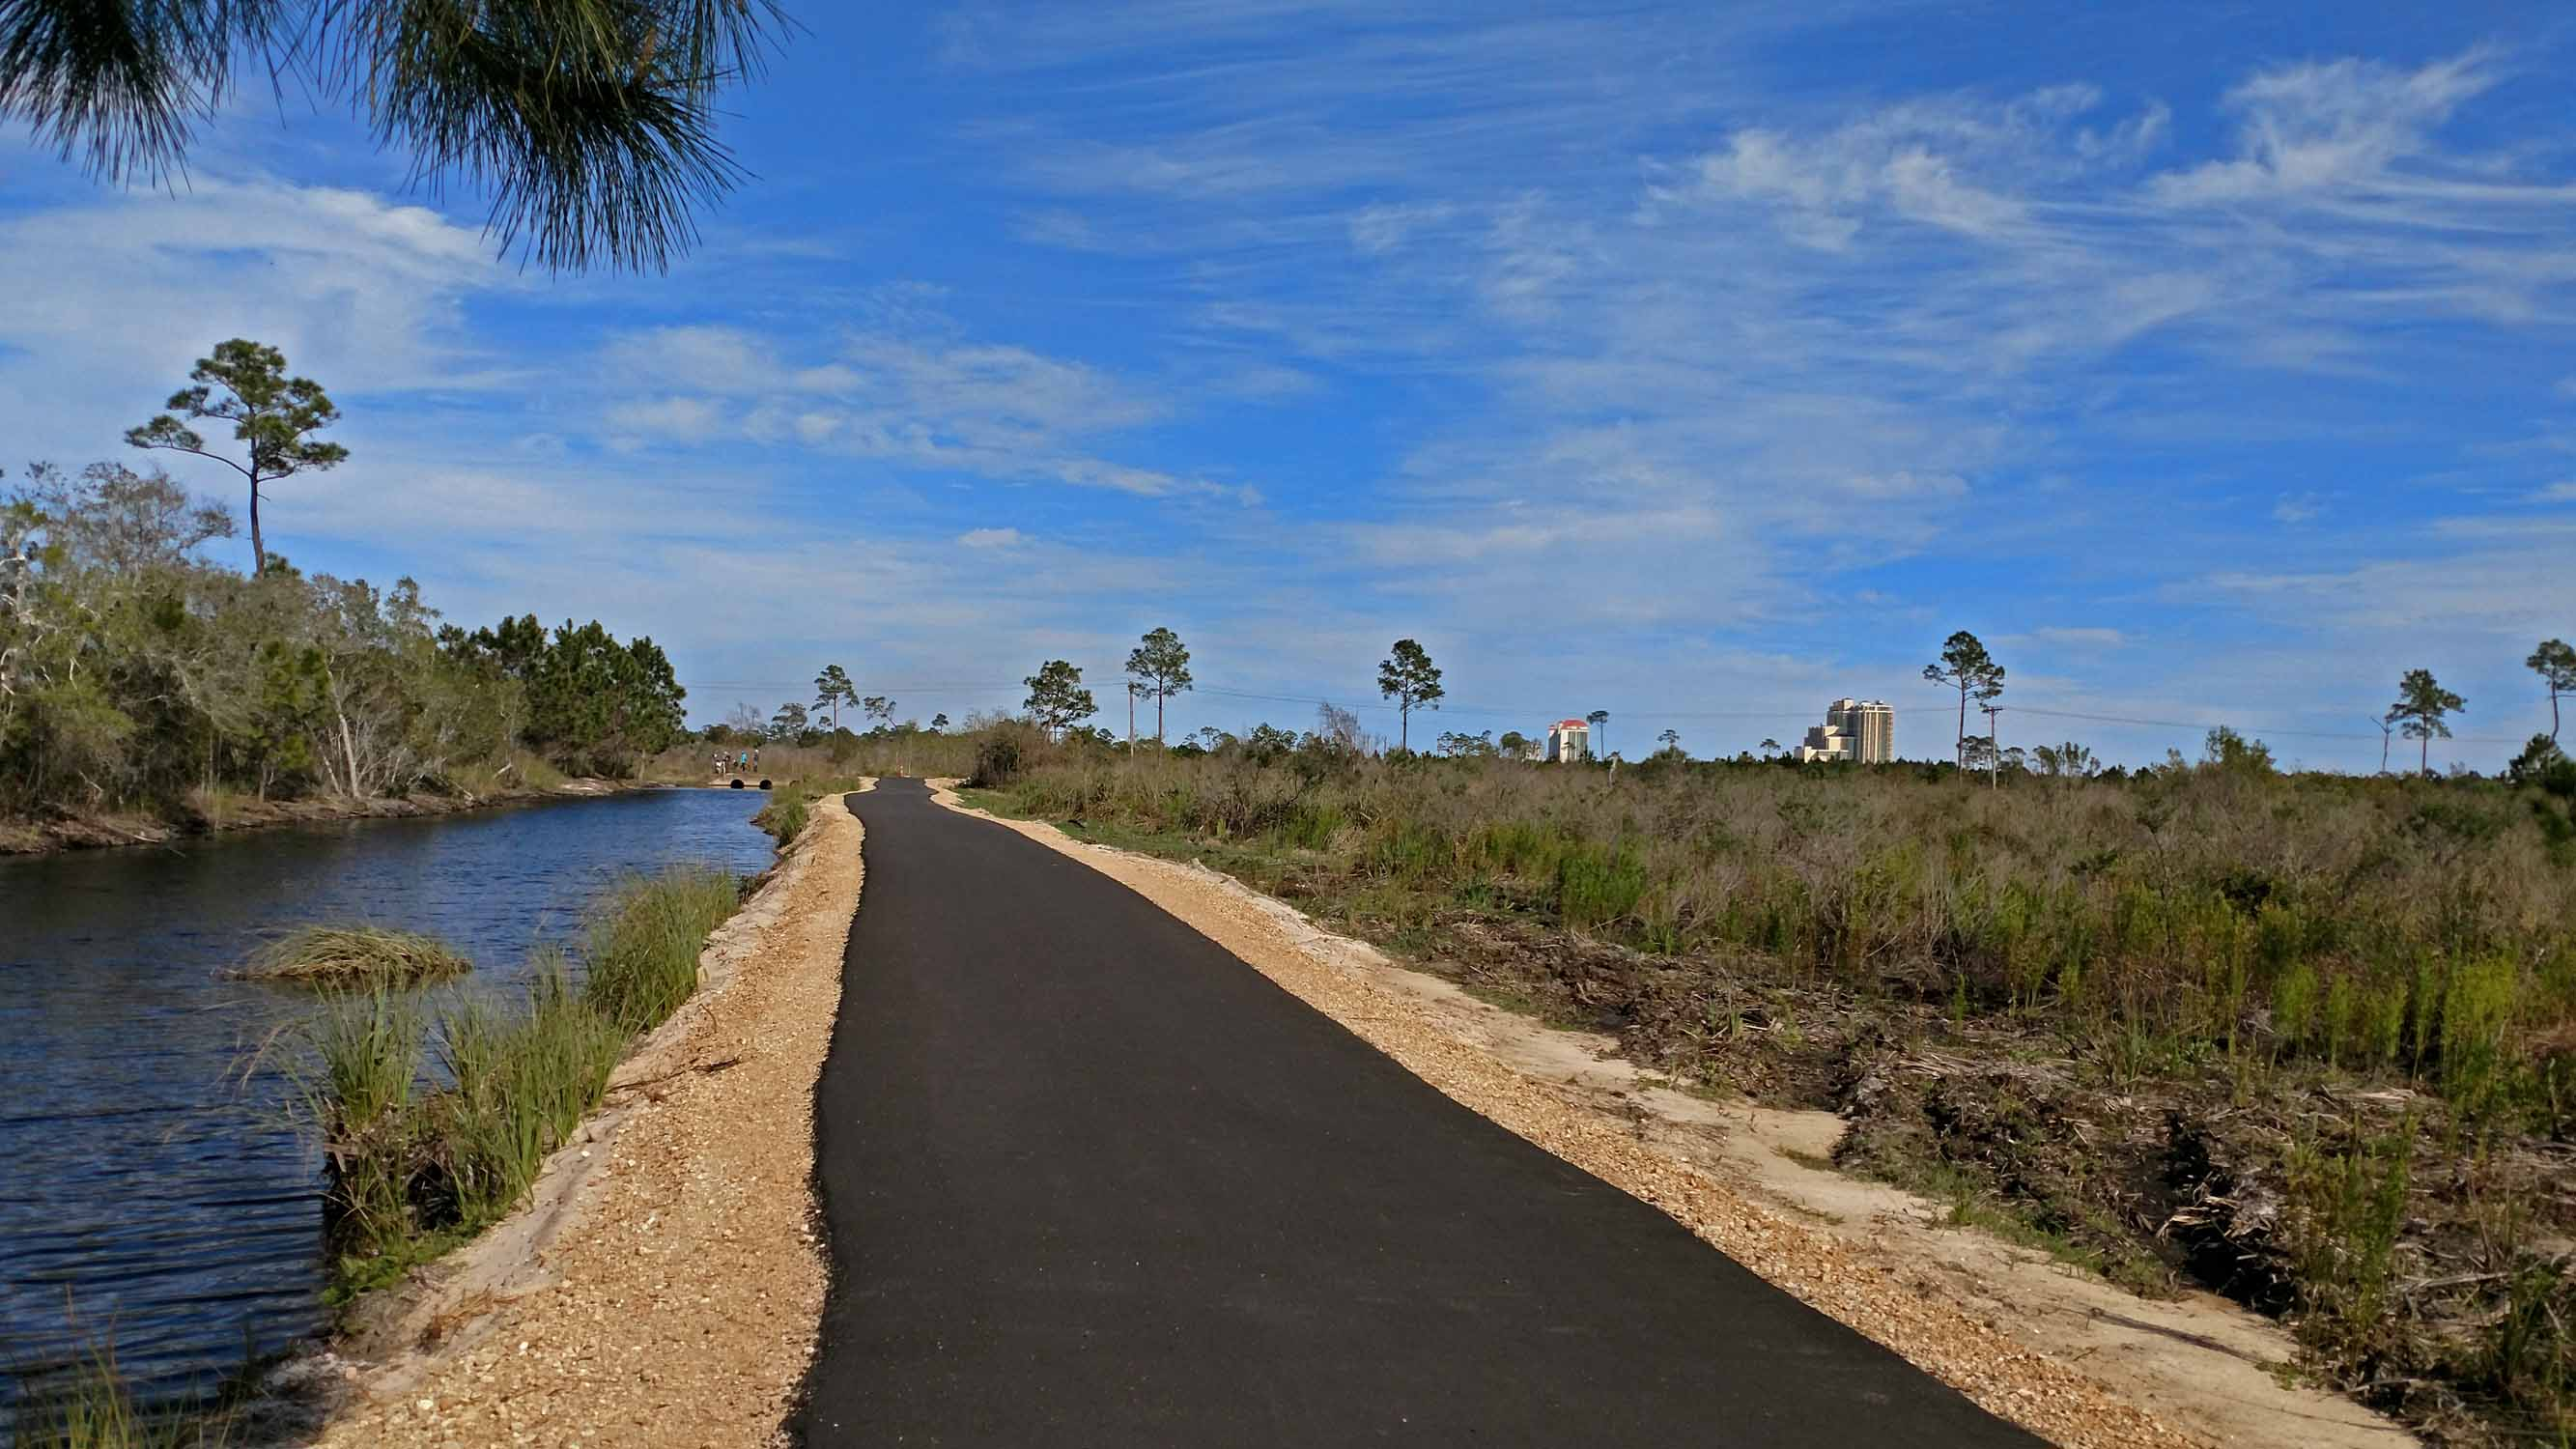 Lots of new trails at the Gulf Shores State Park...there were very few days you could not get out on your bike